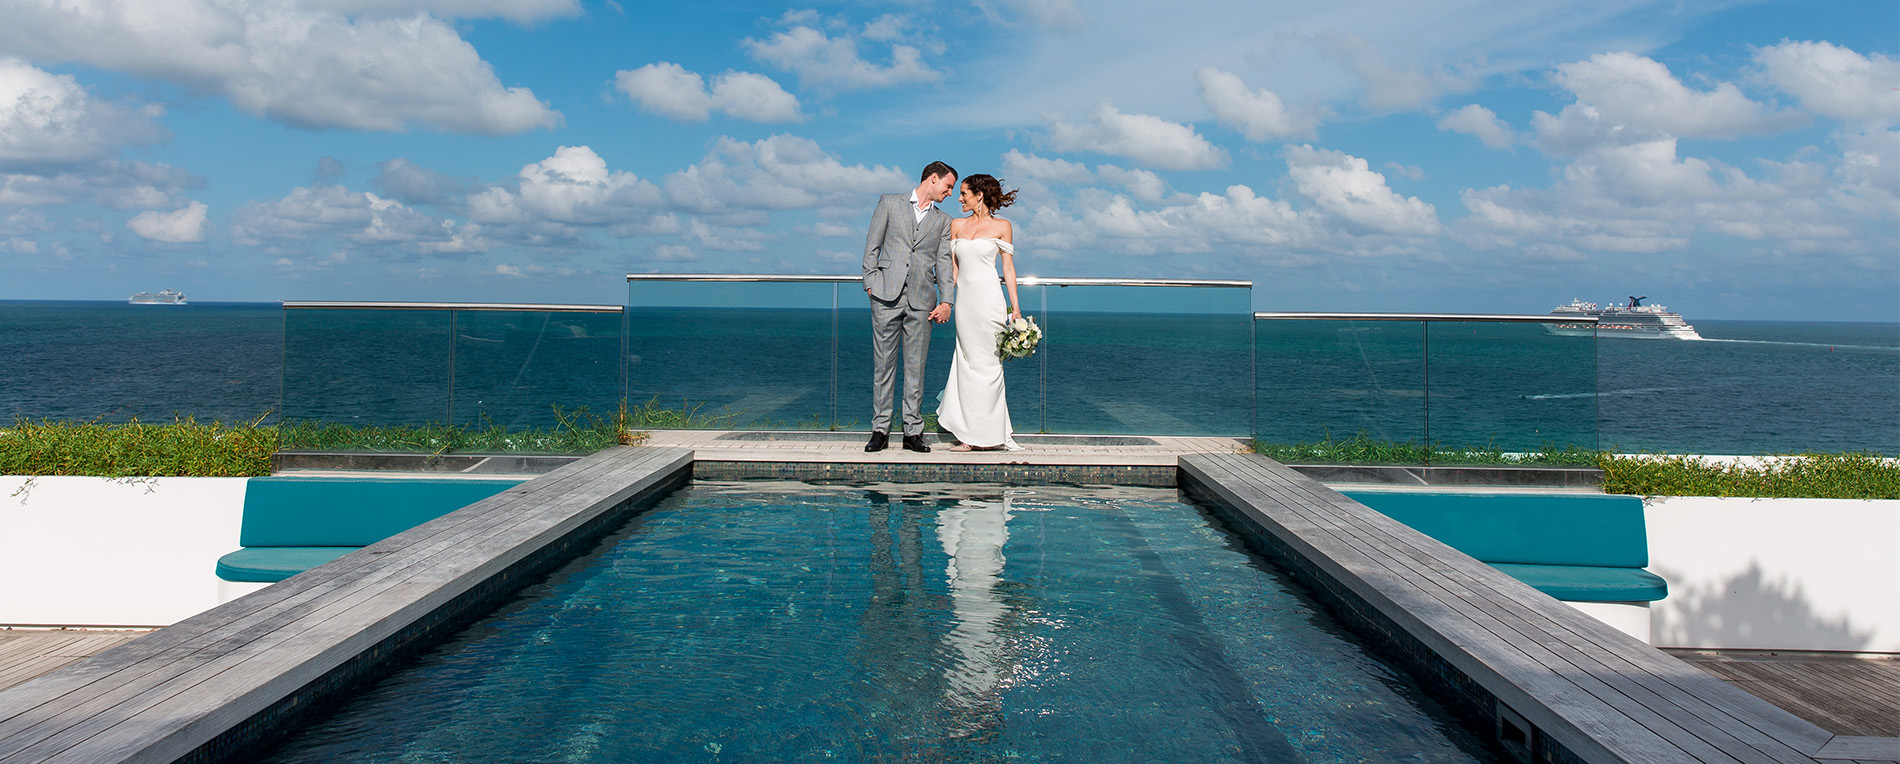 Bride and groom on the rooftop during their Miami Beach Wedding at the Hilton Hotel.